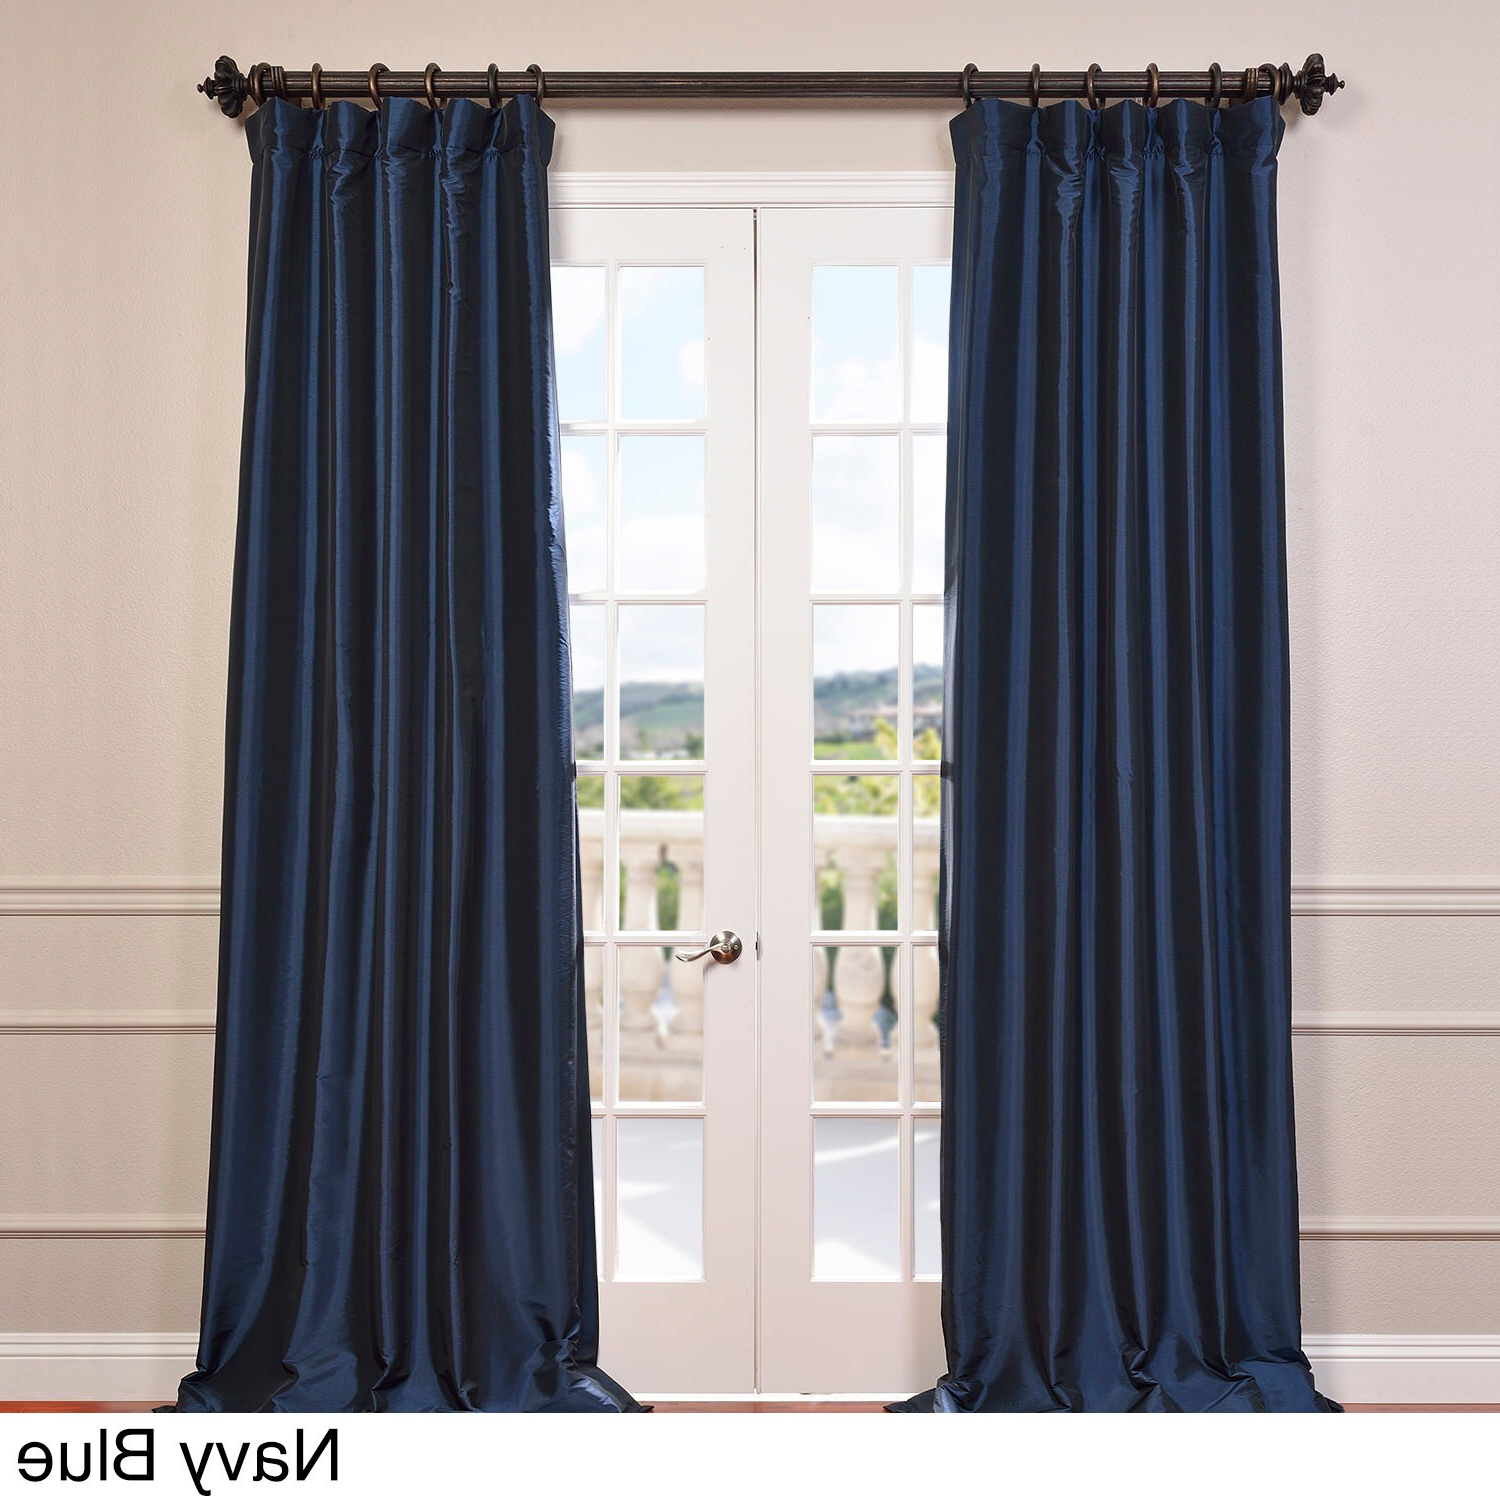 Solid Faux Silk Taffeta Graphite Single Curtain Panels For 2021 Half Price Drapes Ptch Bo005 108 Blackout Faux Silk Taffeta (View 8 of 20)